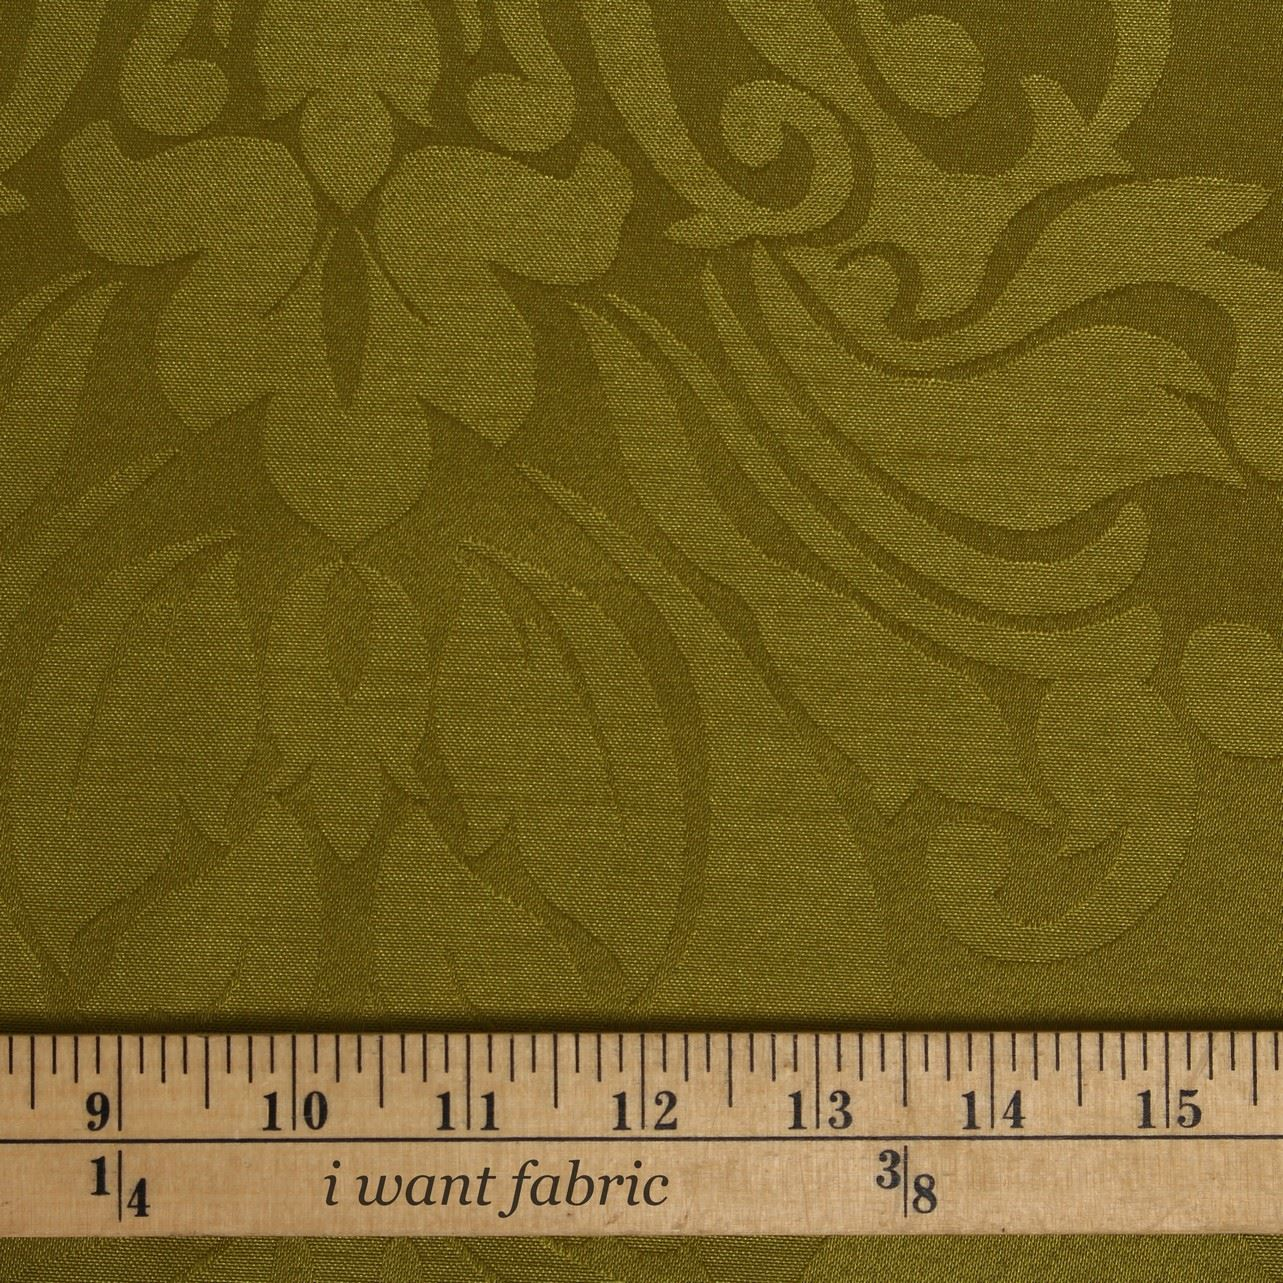 FLORAL-DAMASK-FAUX-SILK-JACQUARD-CURTAIN-UPHOLSTERY-FABRIC-MATERIAL-12-COLOURS thumbnail 17